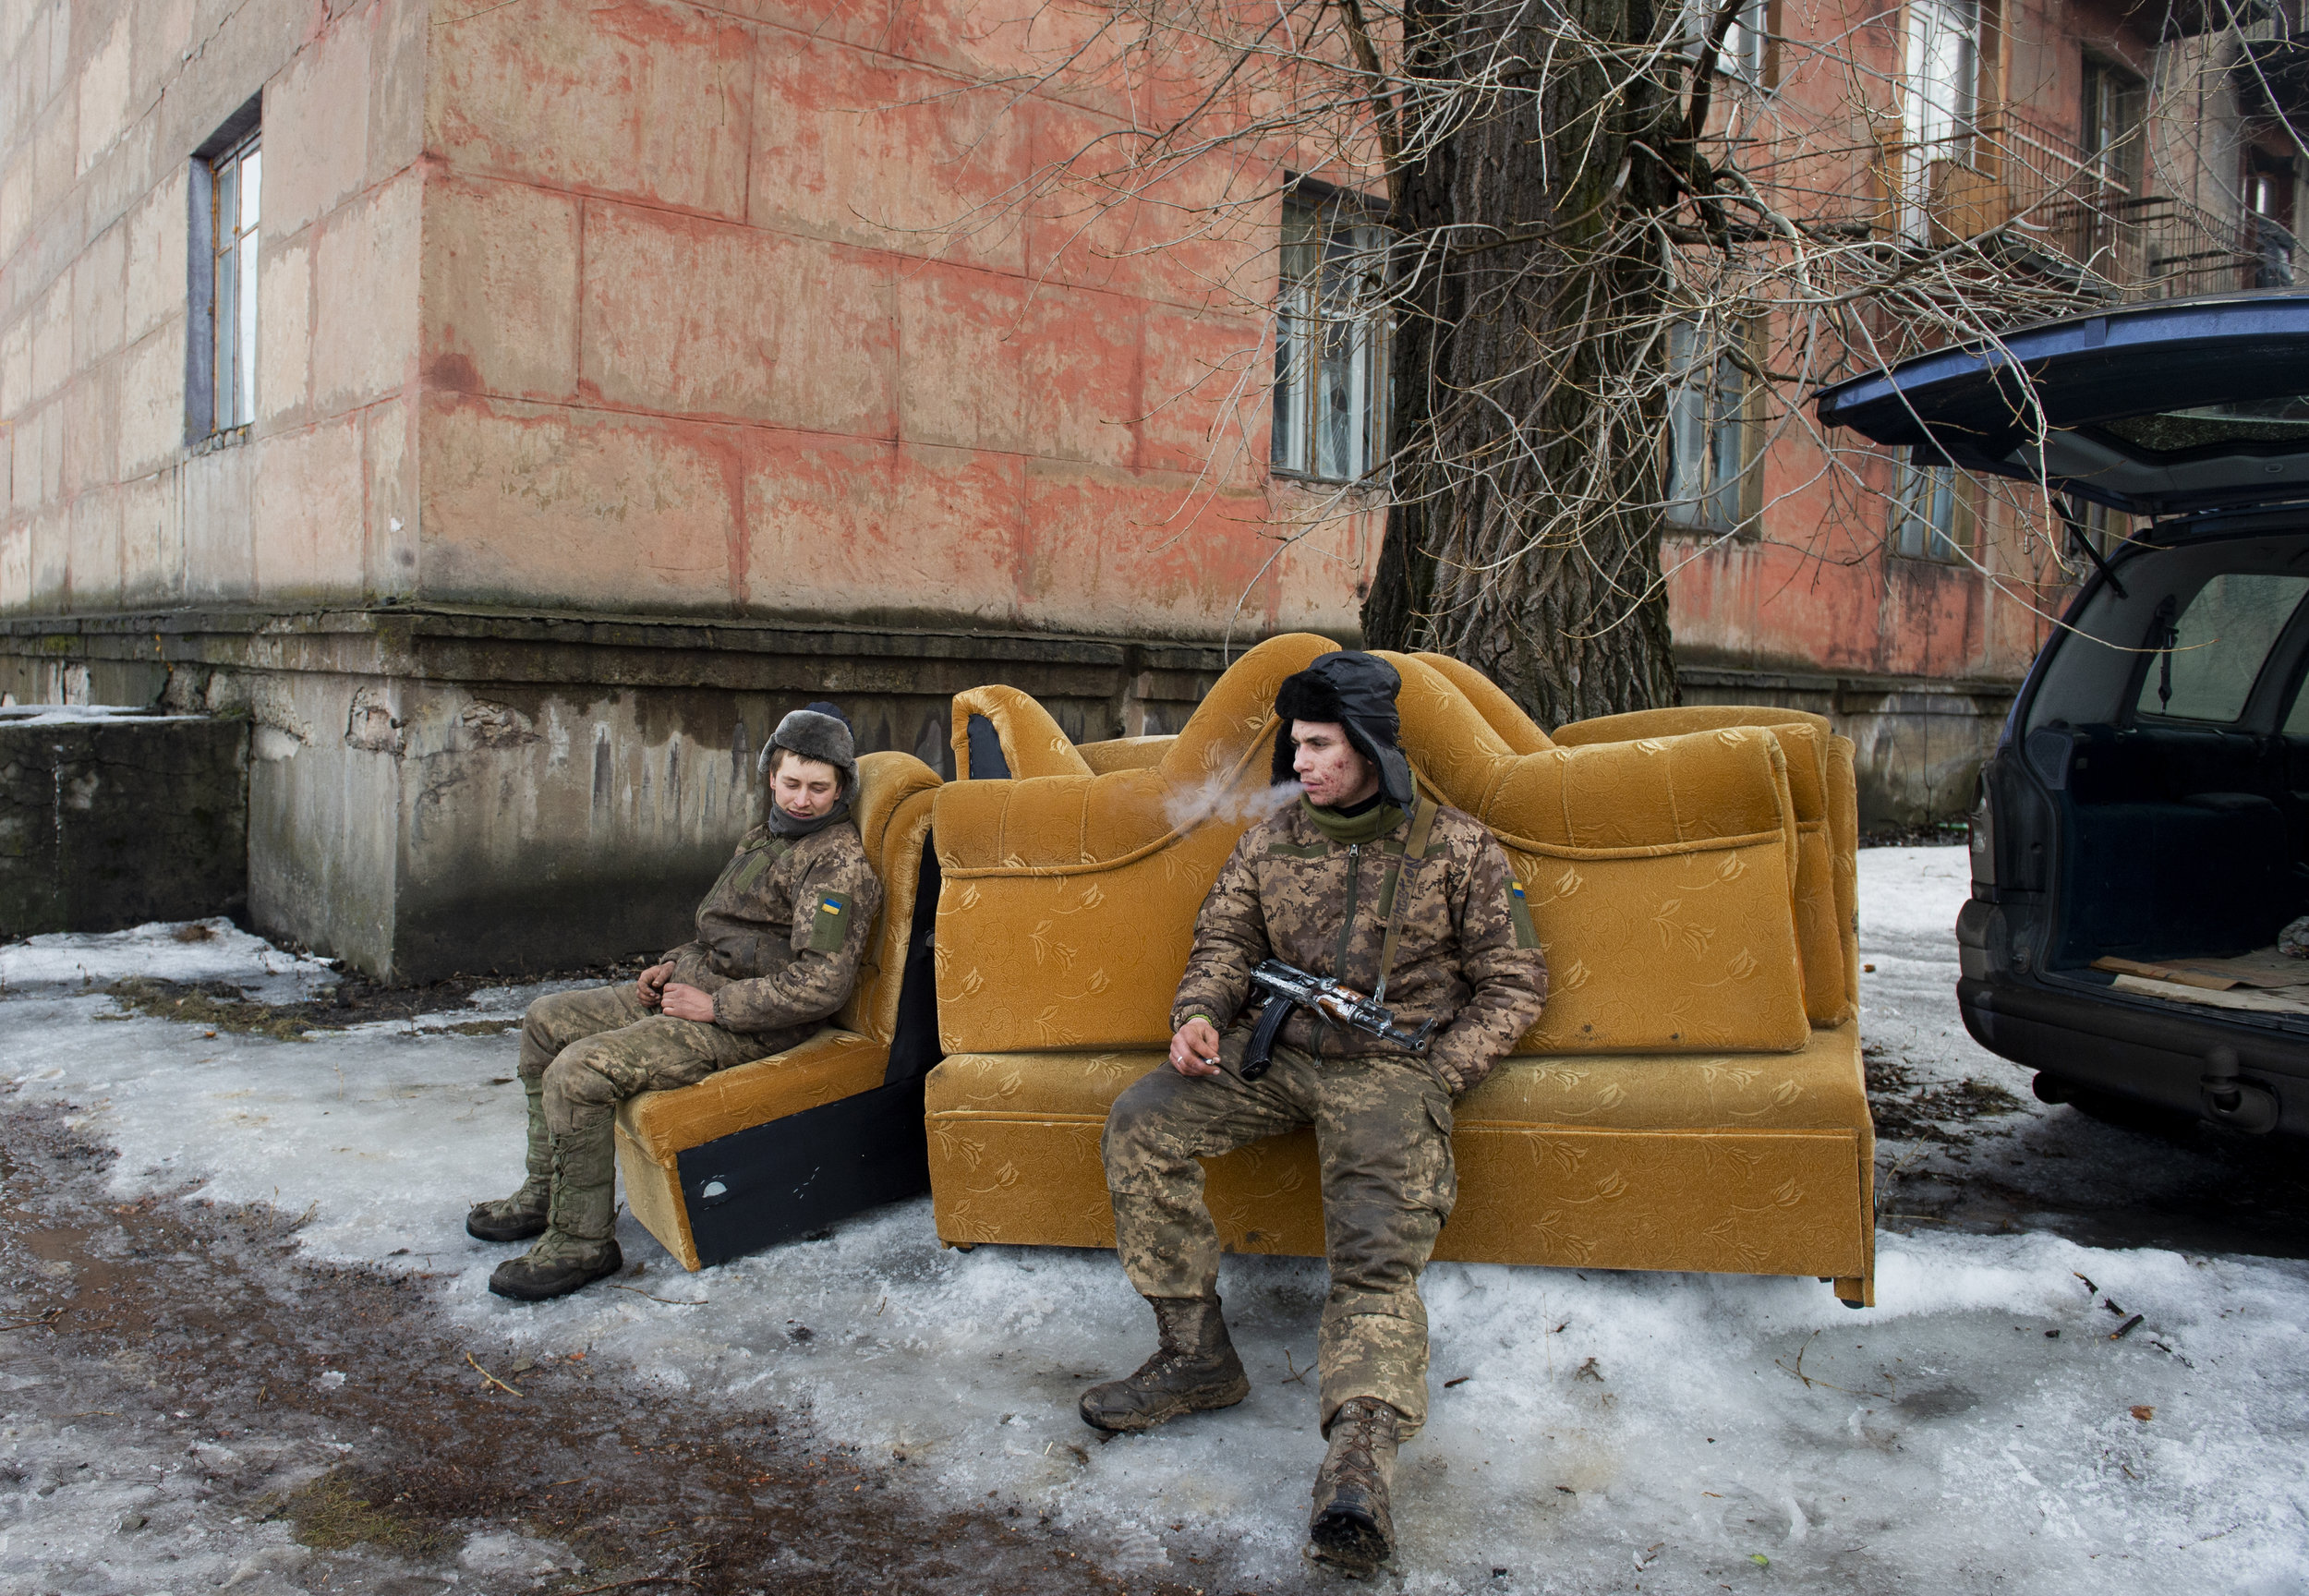 After several days of heavy shelling at Point Zero in Zolote, which destroyed an apartment buildign that soldier shared with civilians, soldiers take a break while helping move civilians from the building.